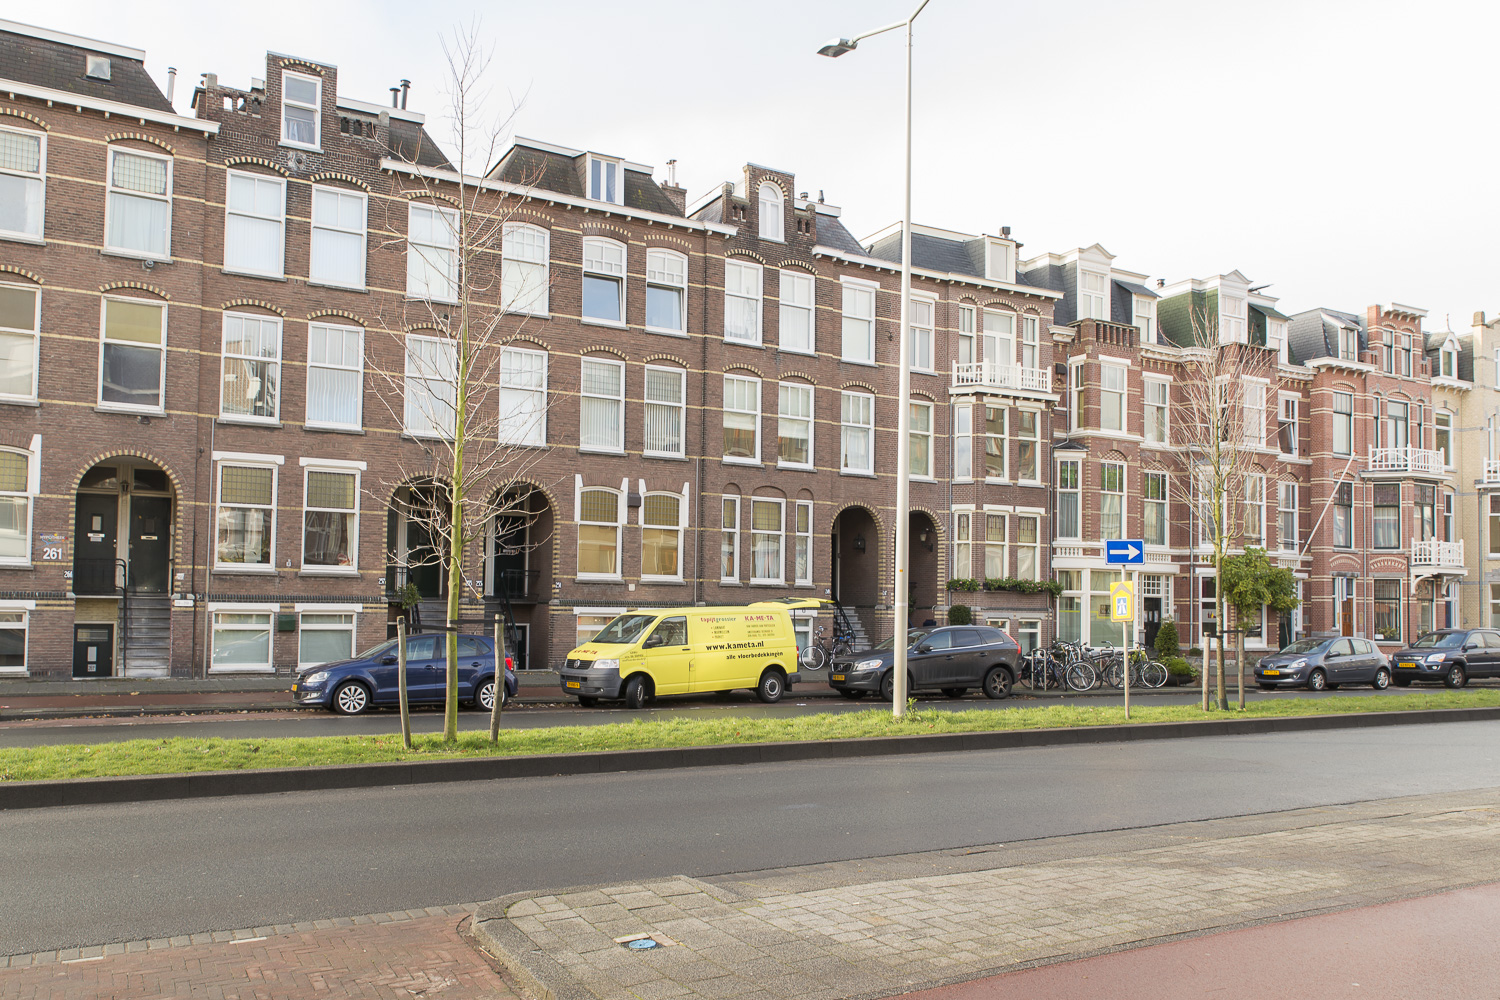 Groot Hertoginnelaan, The Hague